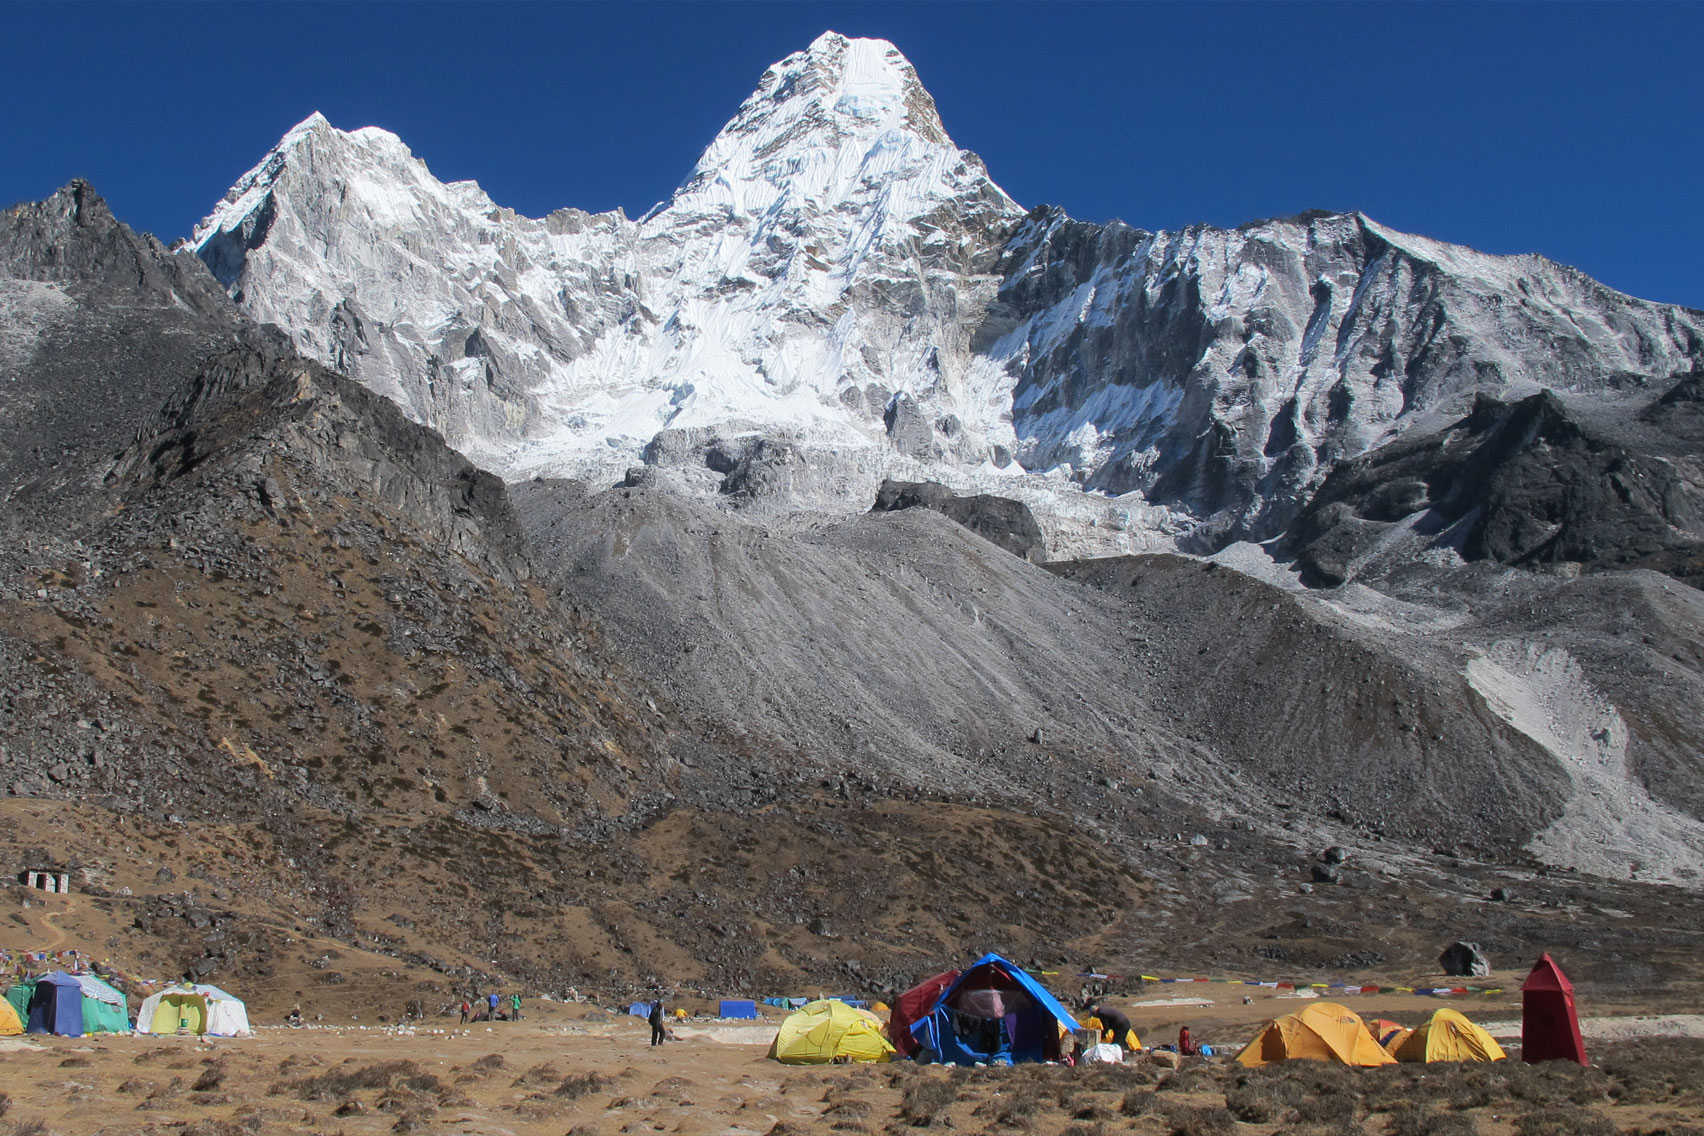 Day 9: Trek from Pangboche (4000m) to Khumjung (7hrs, 3790m)